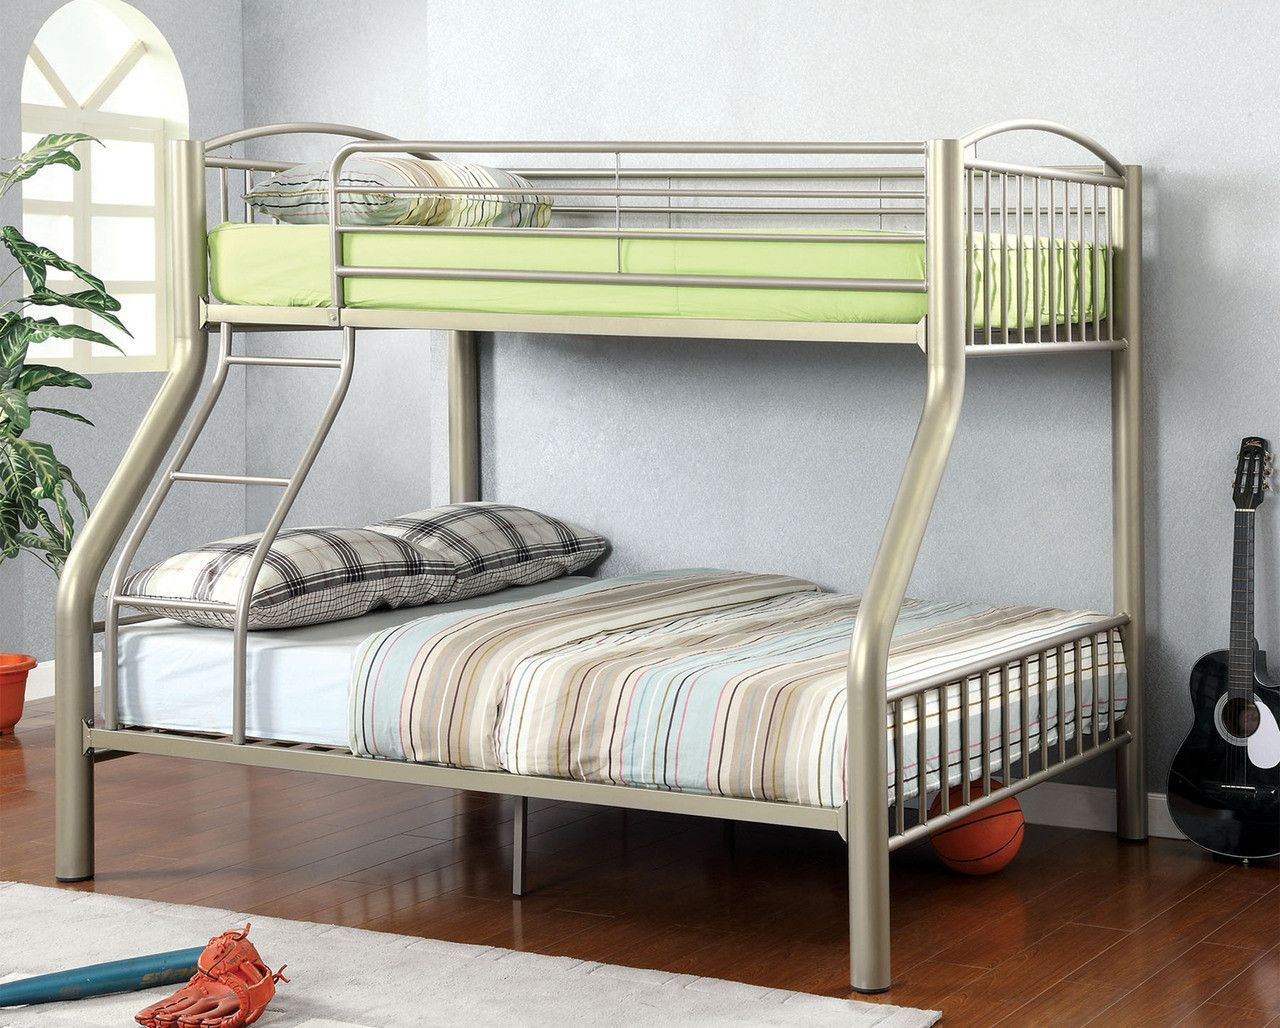 Loft bed with desk pottery barn  TwinFull Bunk Bed CmBkTf  Products  Pinterest  Products